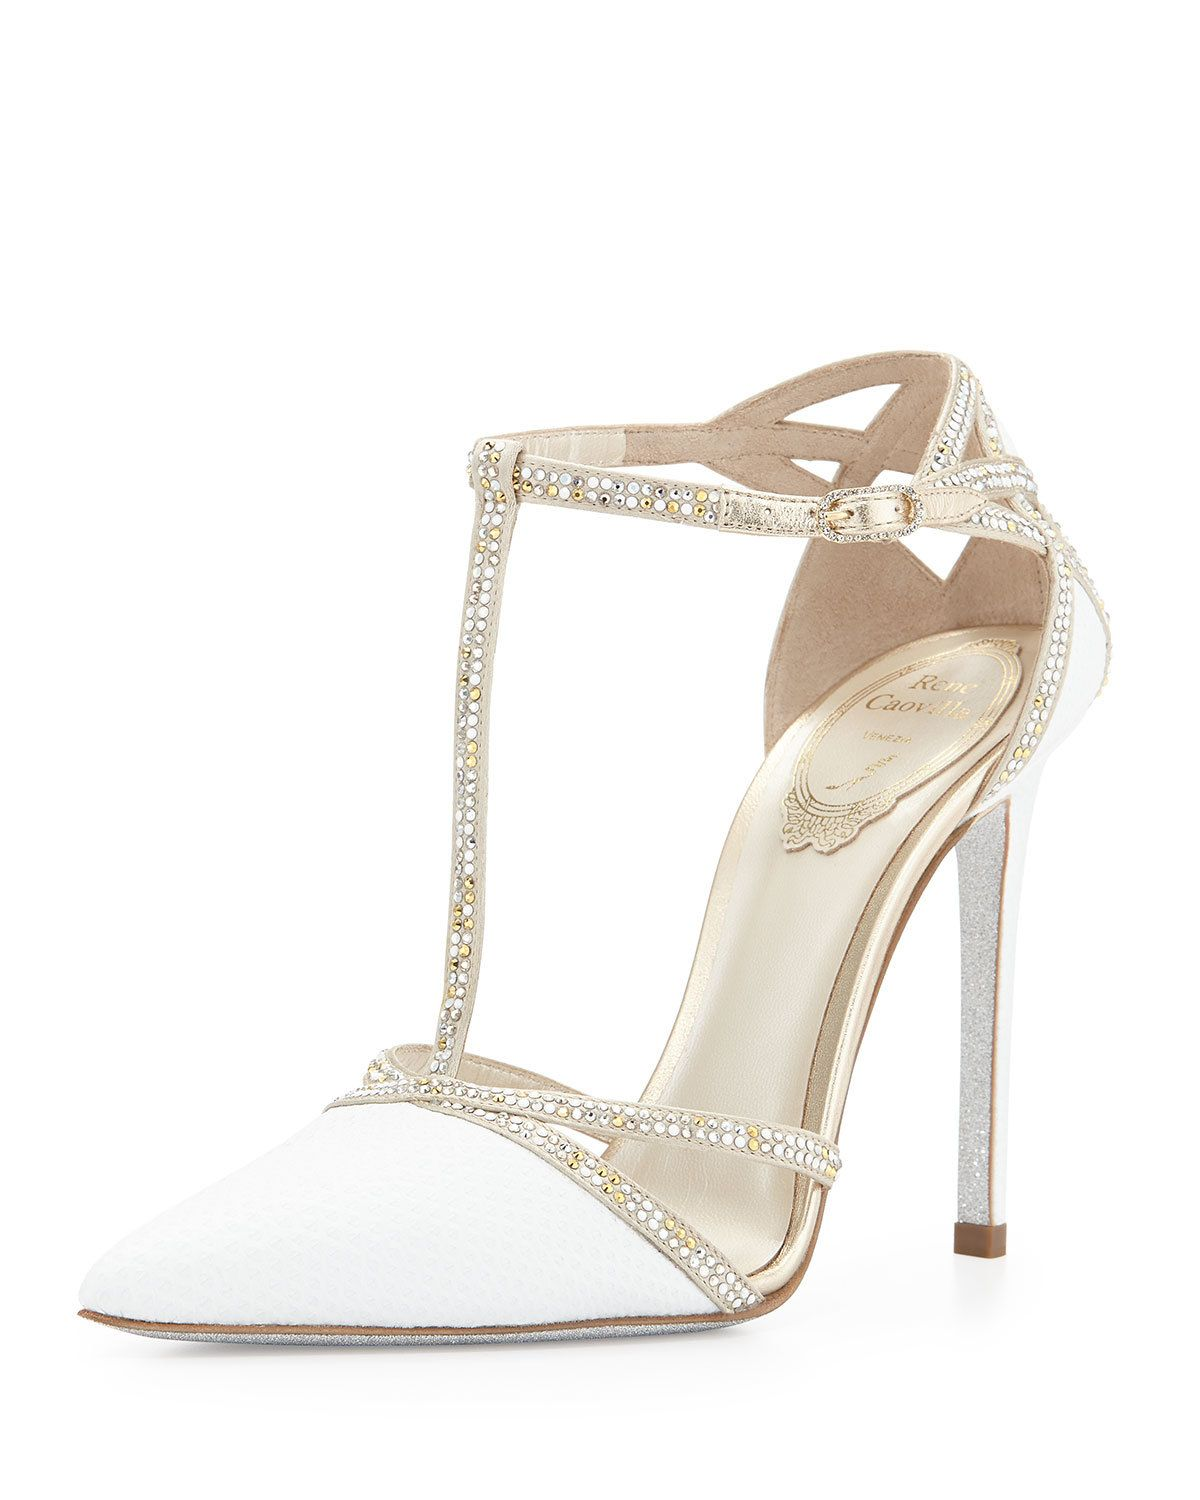 Fairytale Wedding Shoes That Would Make Even Cinderella